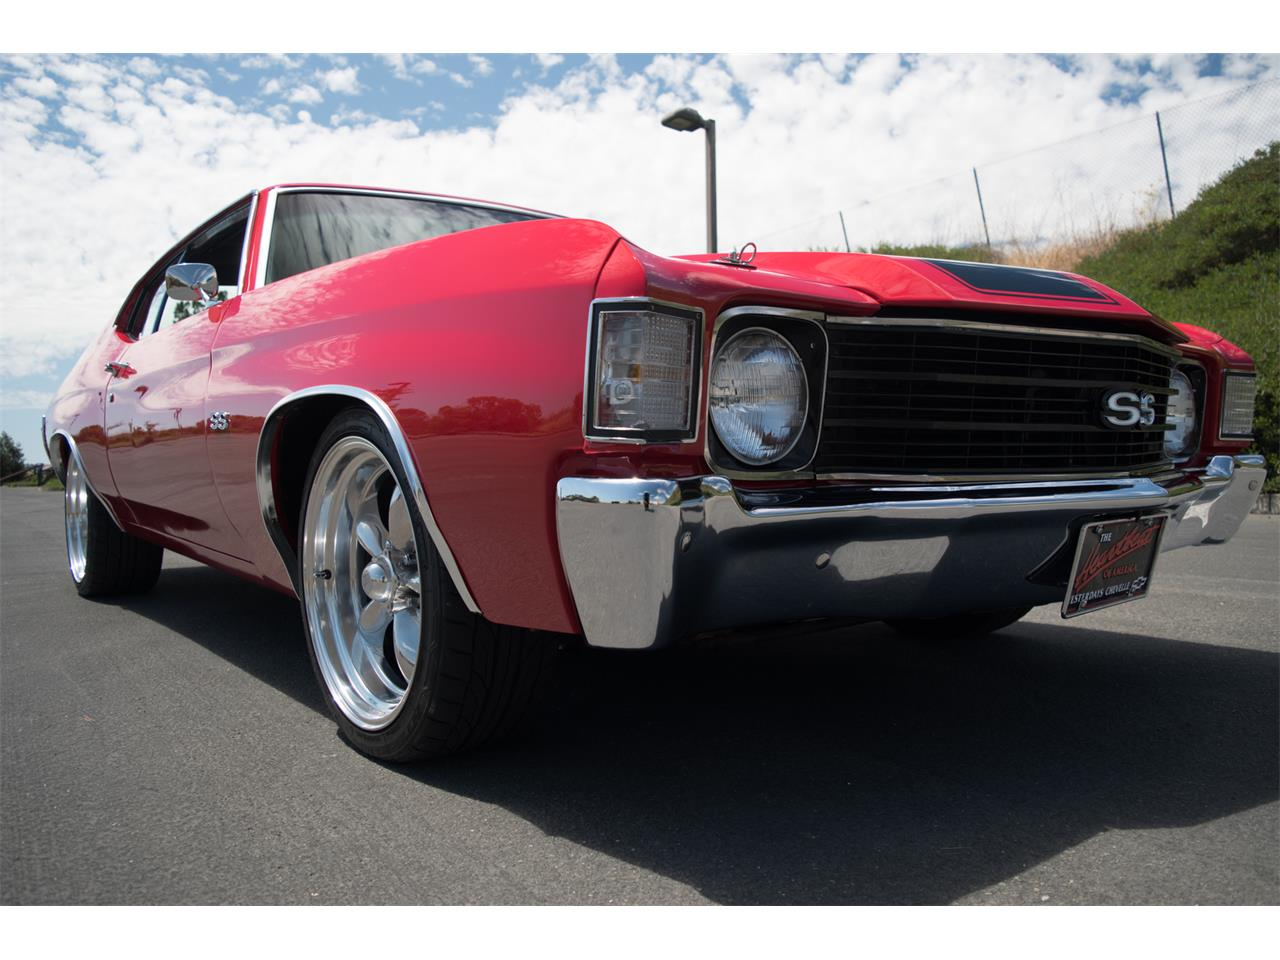 1972 Chevrolet Chevelle (CC-1247258) for sale in Fairfield, California